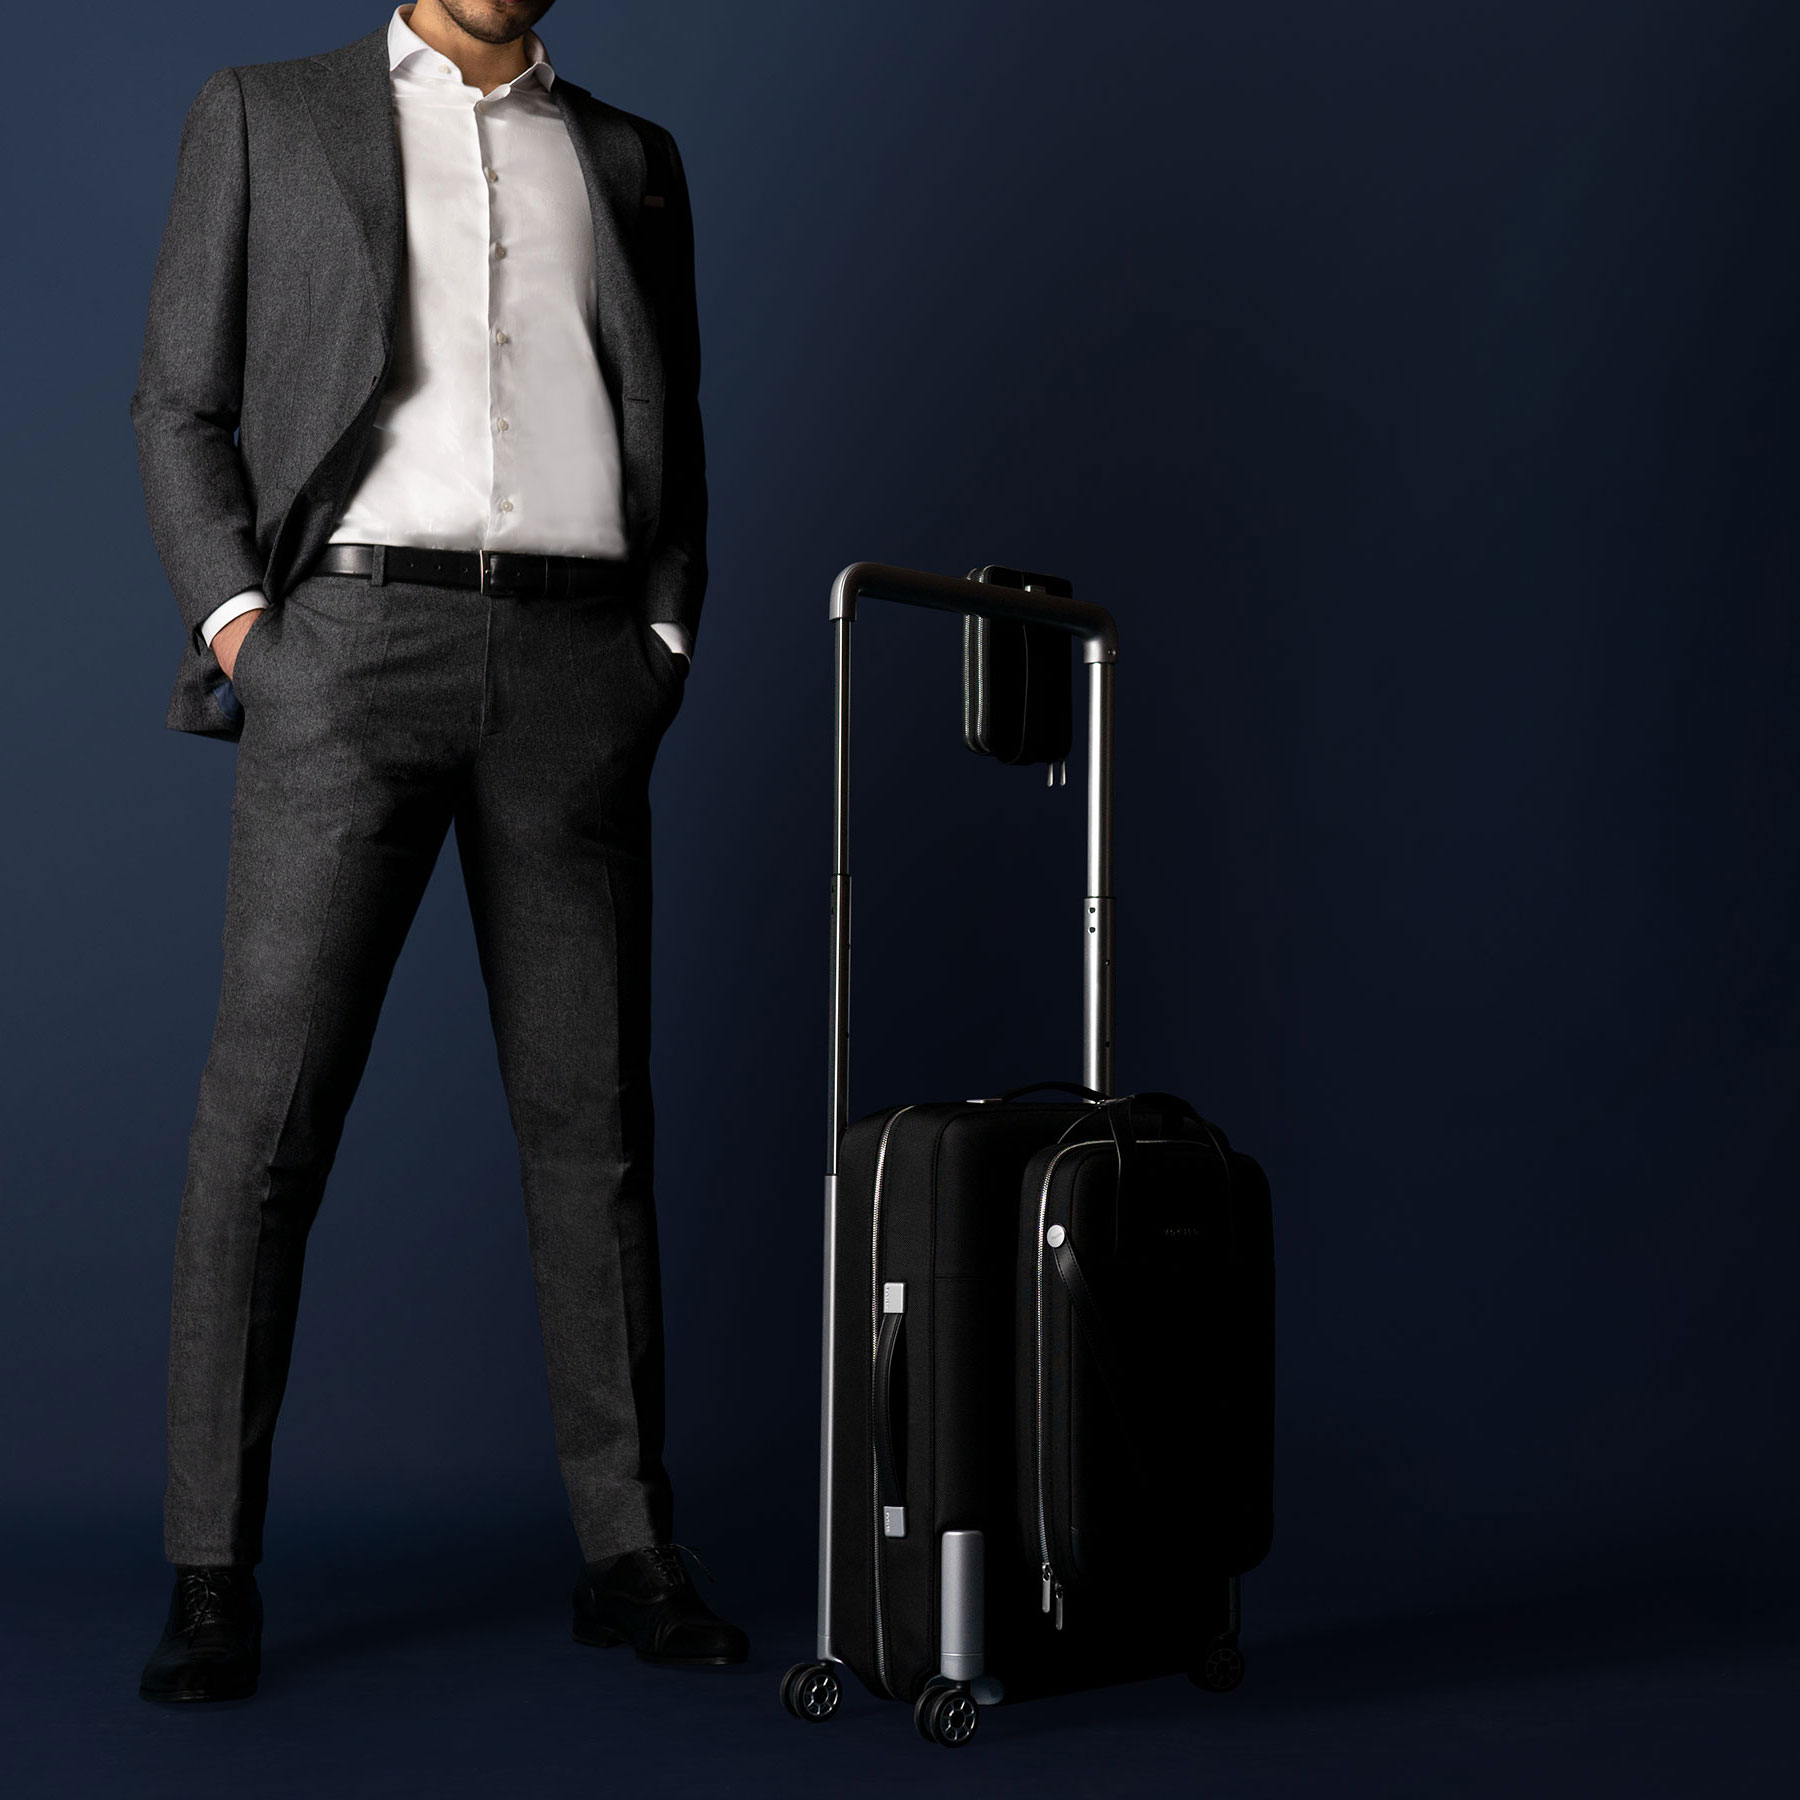 Modelshot_Man_suit_ironed_luggage_complete_square-(2).jpg